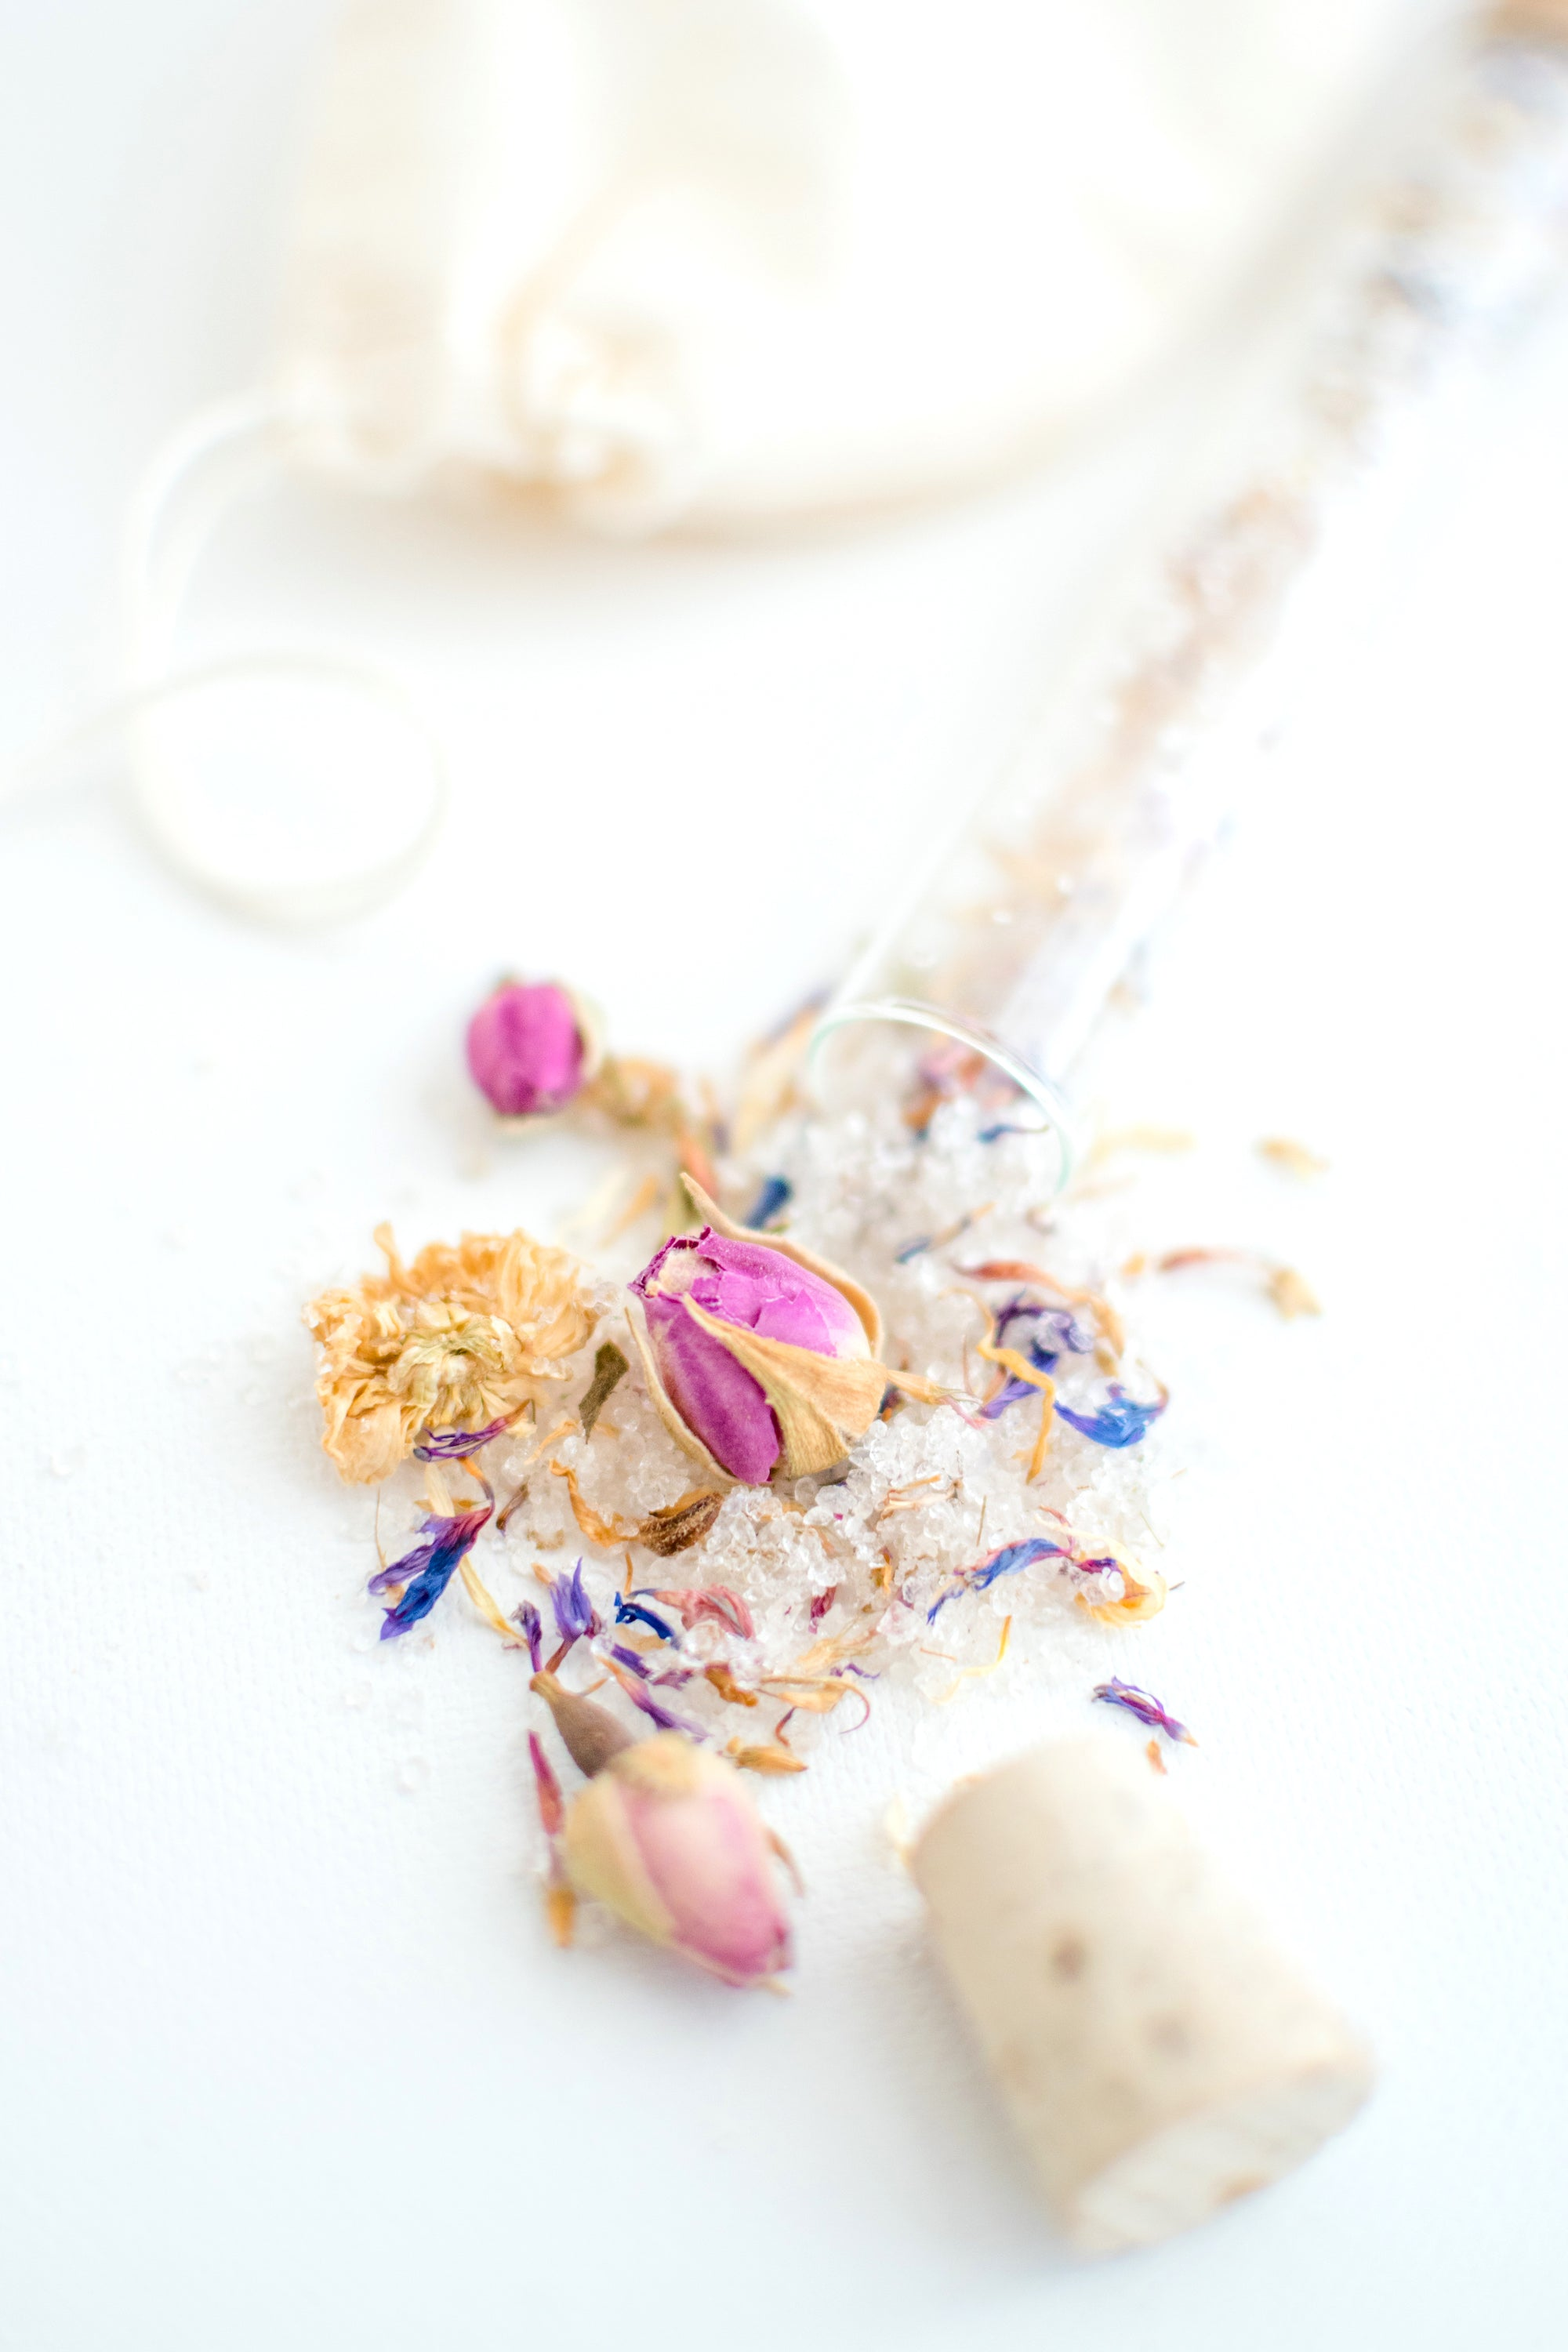 Truly Aesthetic Bestow Floral Petite Bath Affirmations Bath Salts Ingredients Close Up